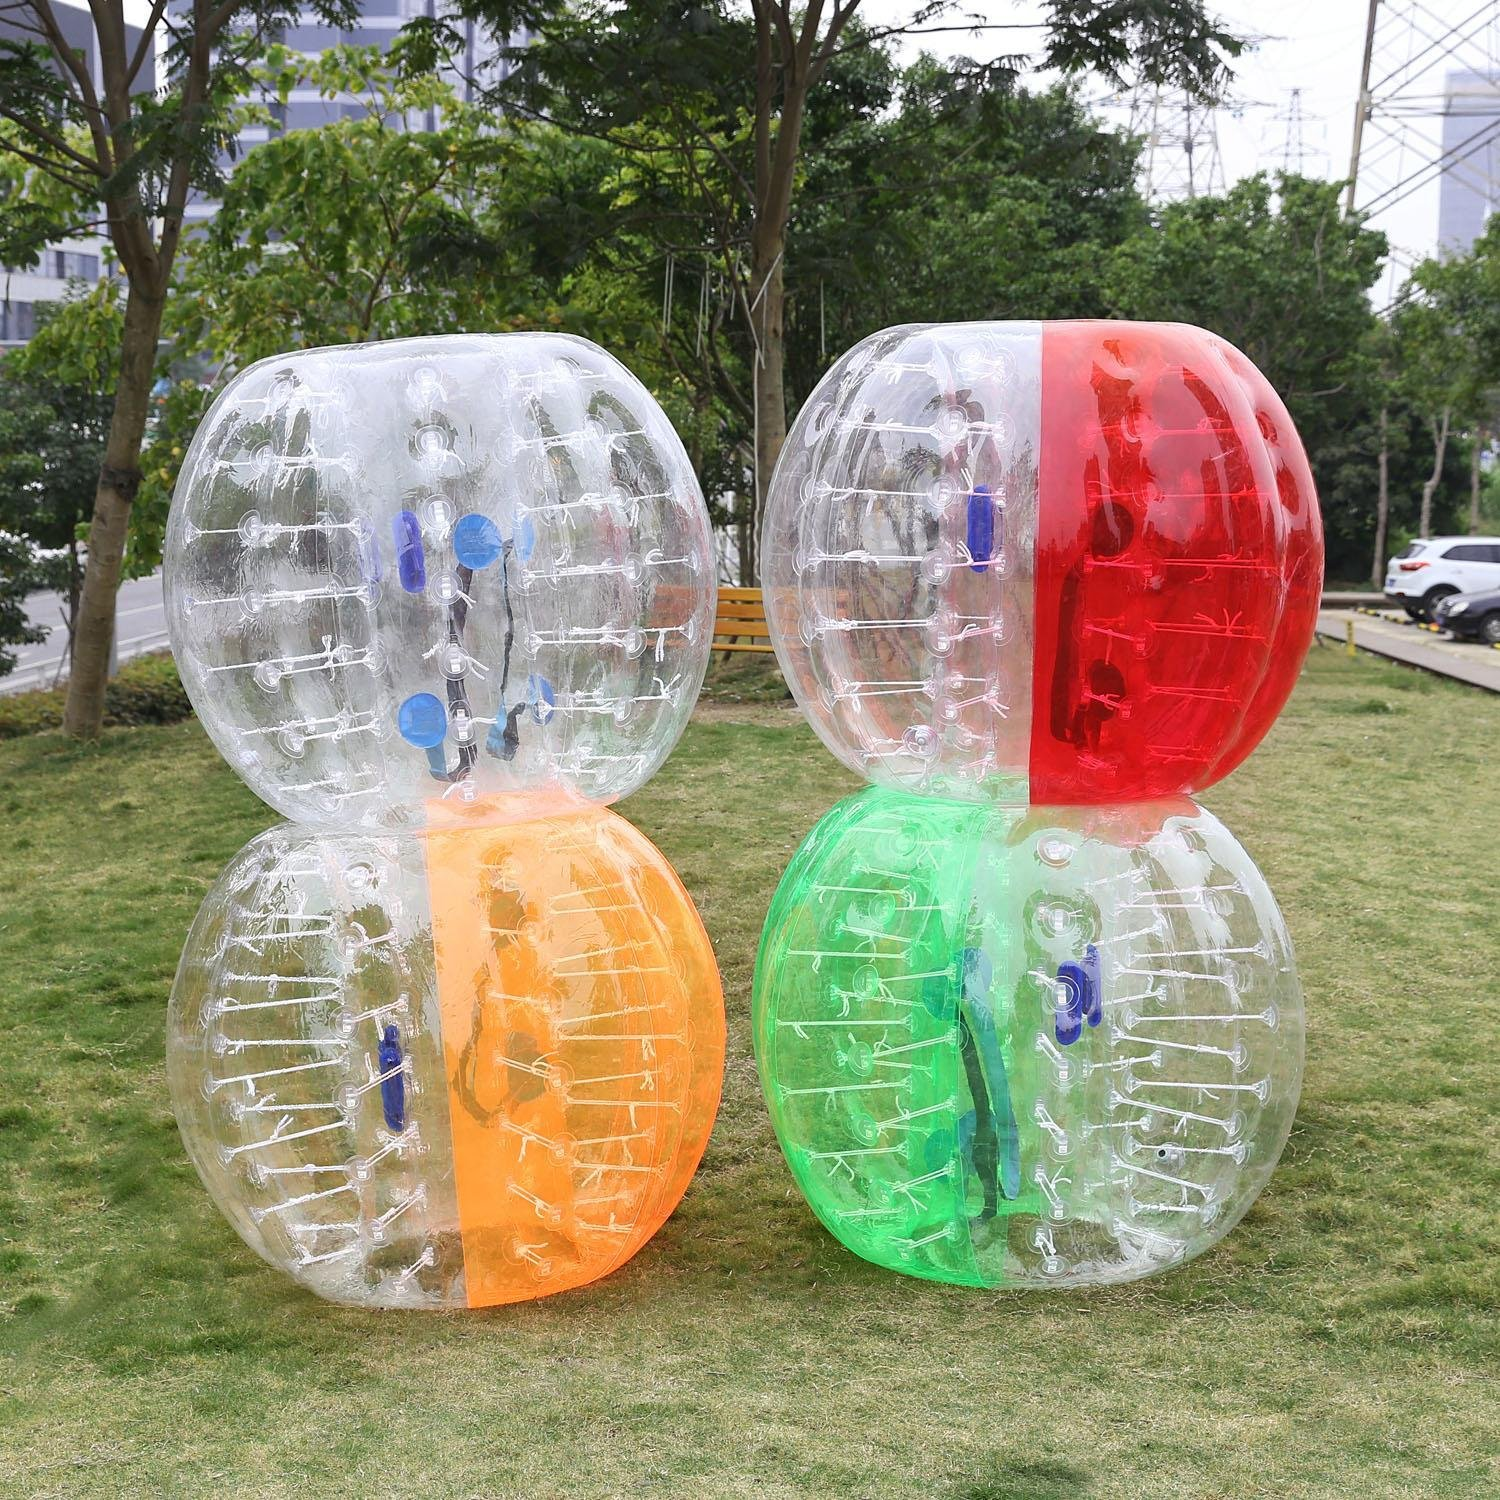 Mewalker Giant Inflatable Bumper Ball 0.8MM TPU Bubble Soccer Ball Zorb Ball Human Hamster Ball With 2 Handles 2 Adjustable Shoulder for Children Kids Adults Playground Outdoor (1.2M-1.5M,US STOCK) by Mewalker (Image #4)